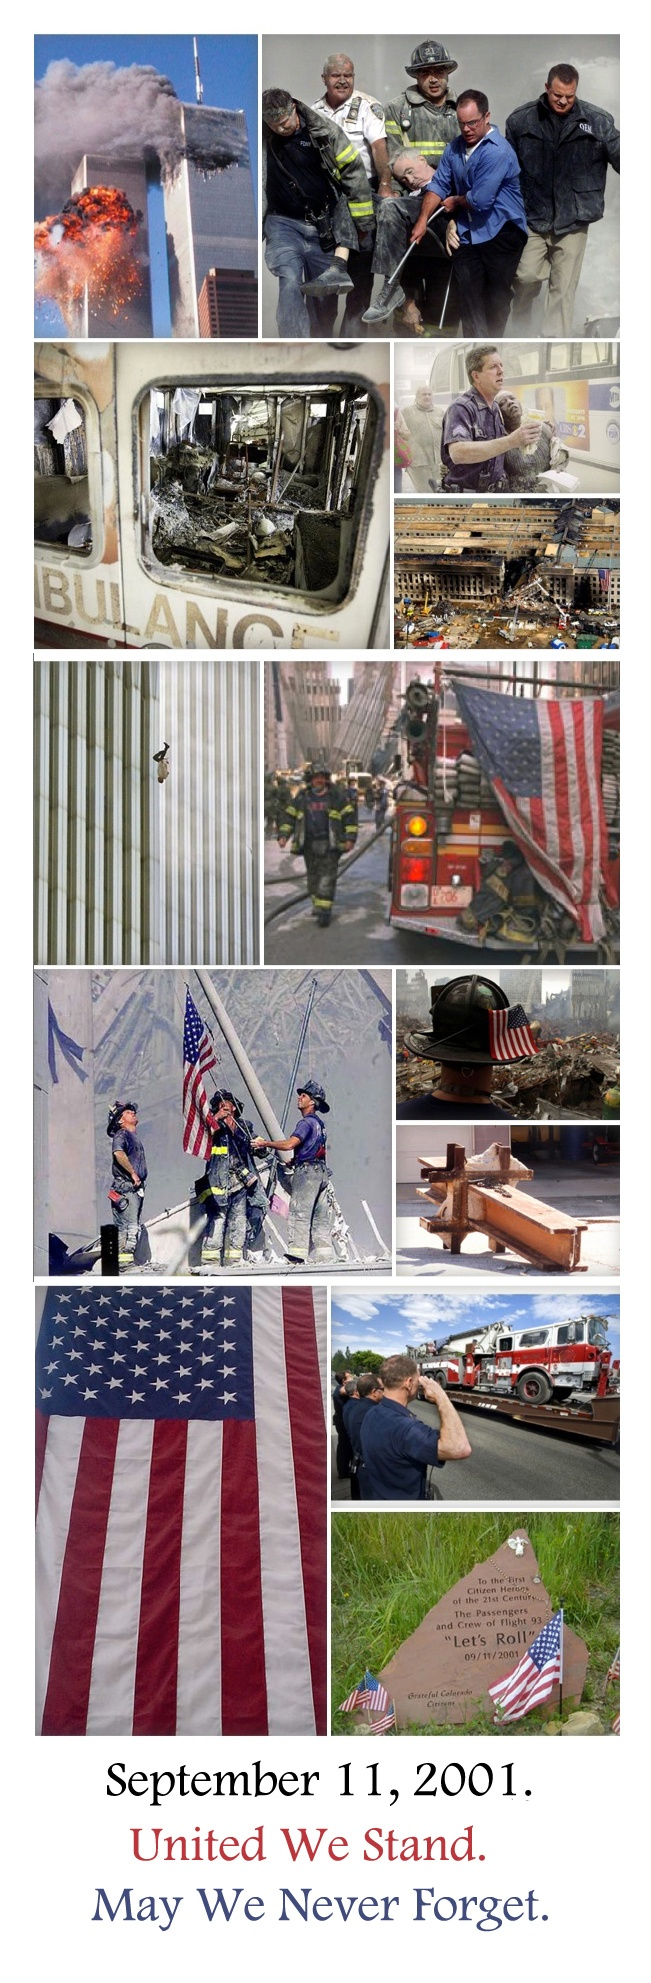 God bless the victims of 9/11, their families, and those who so courageously gave their service, and some the ultimate sacrifice, in the rescue effort and aftermath. God bless America and never forget 9/11 or what we are currently, and always will be, fighting to protect.